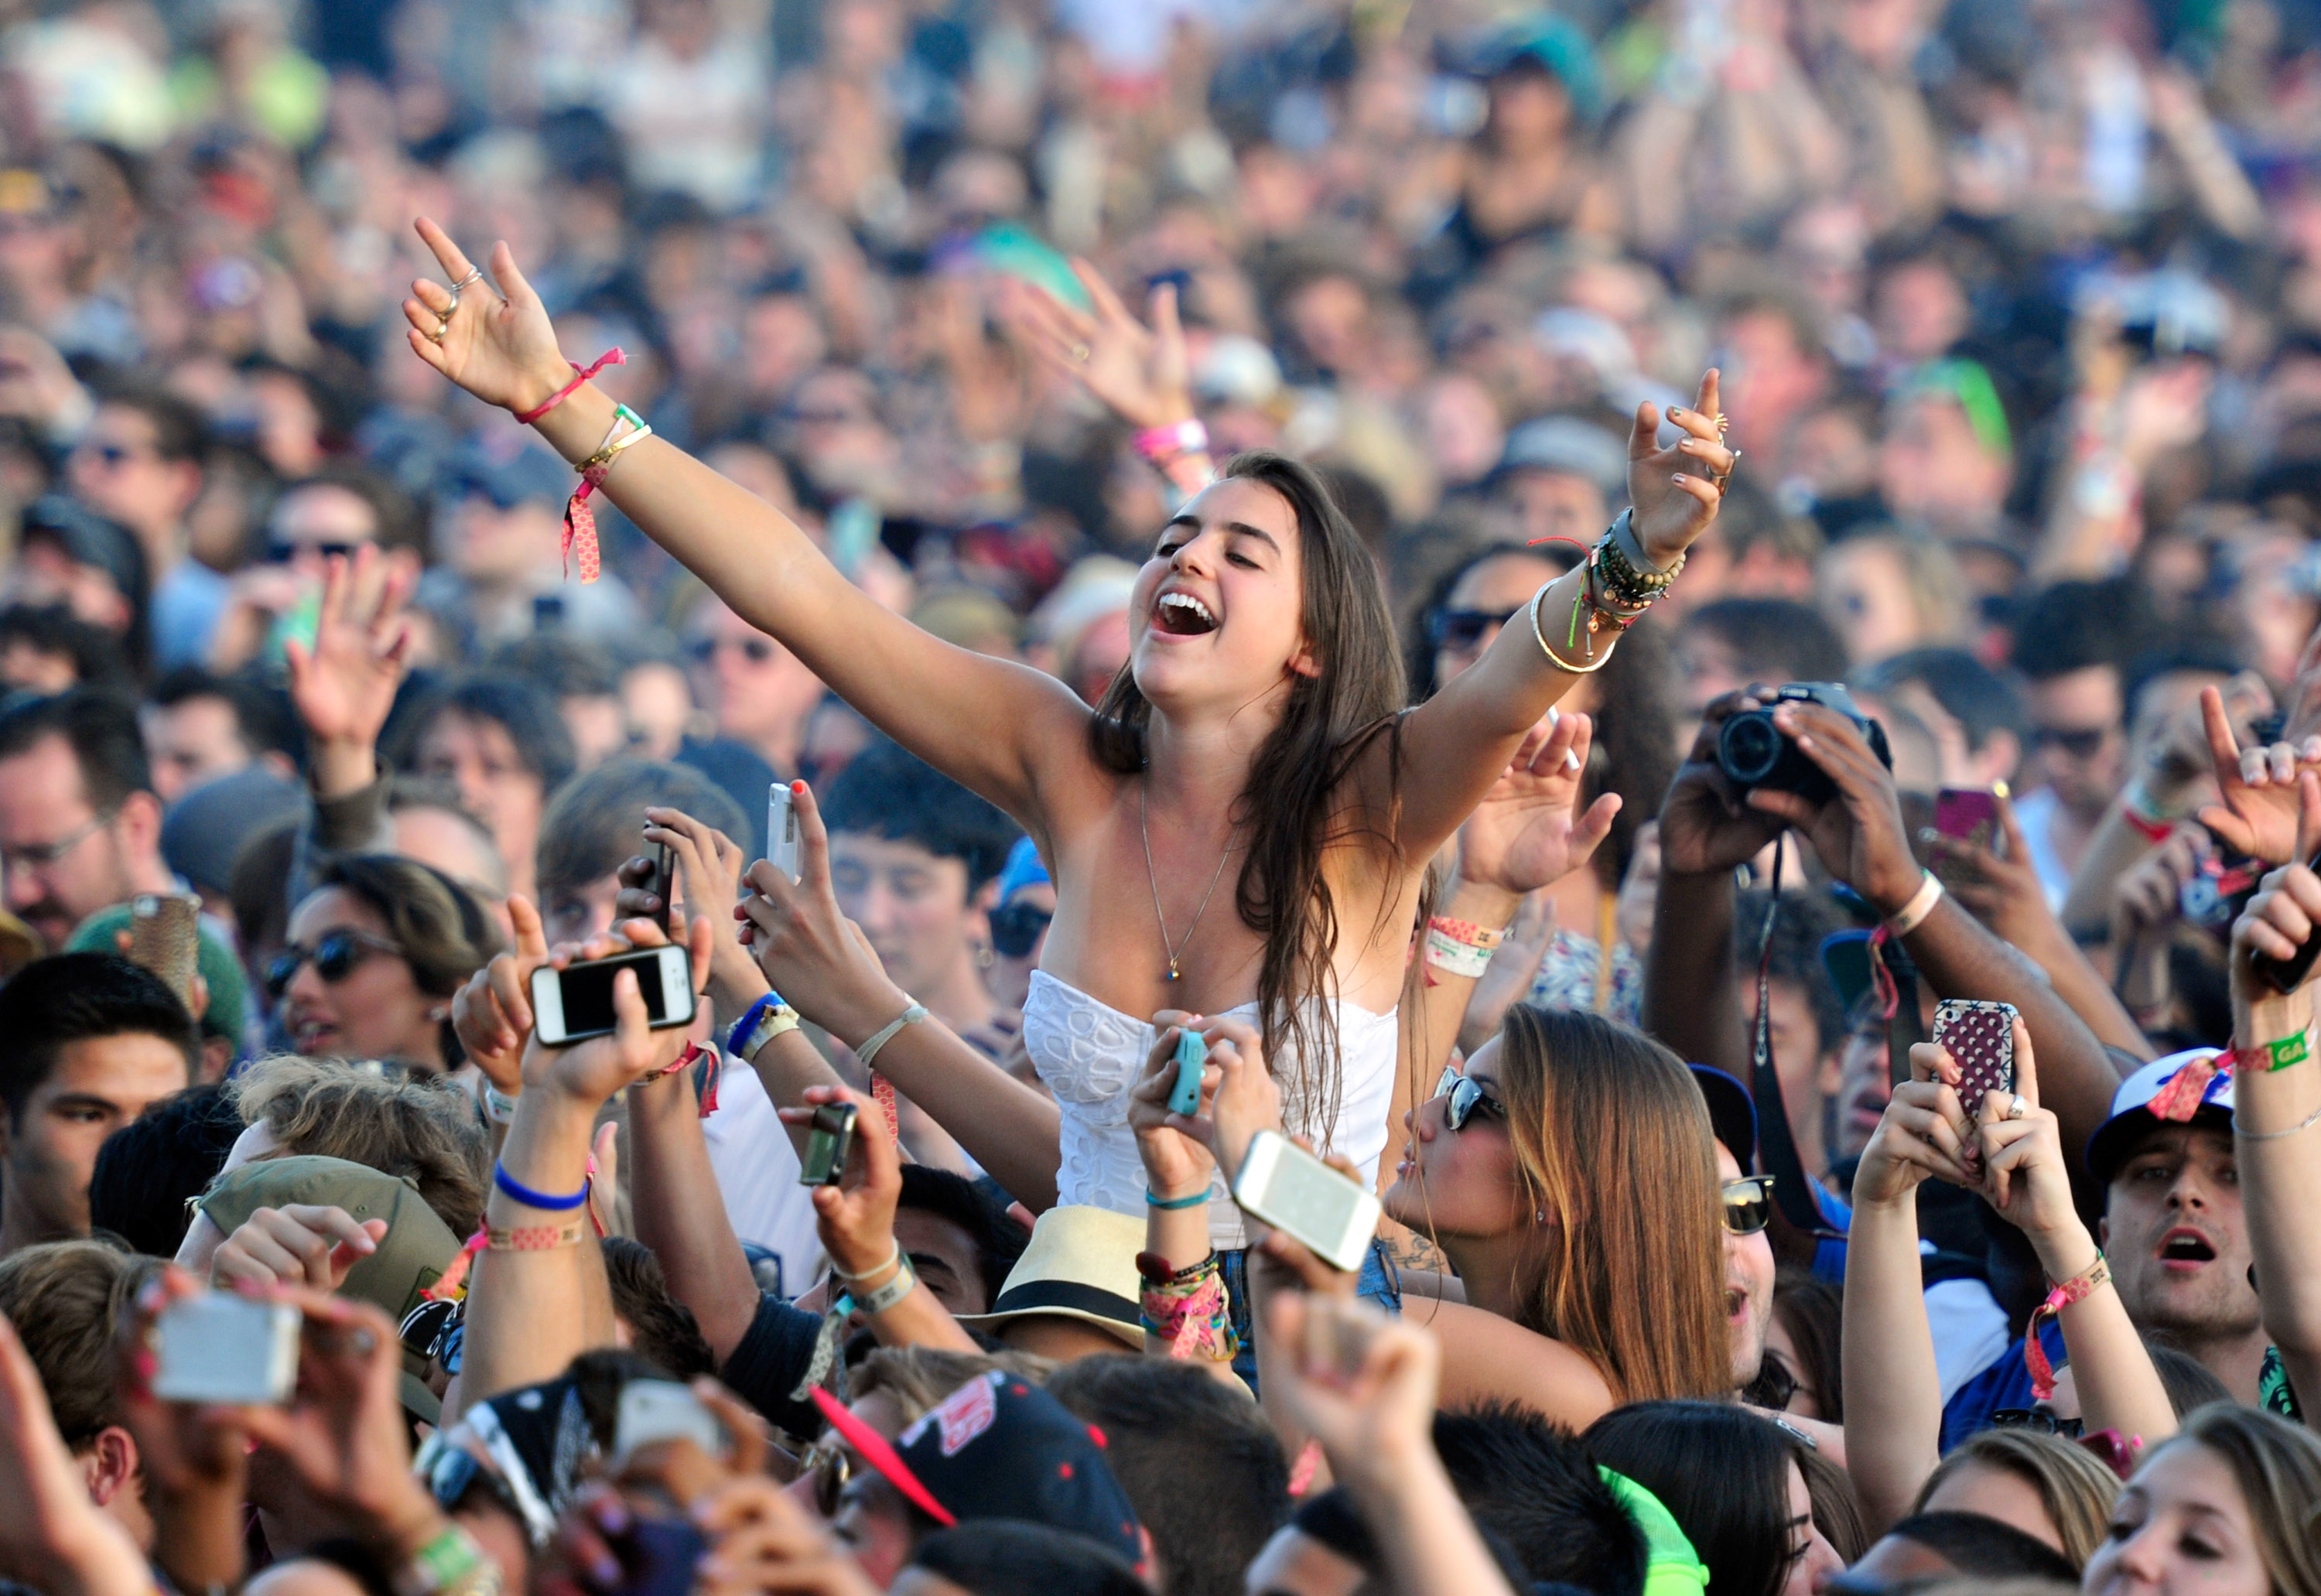 A general view of the crowd during Day 3 of the 2012 Coachella Valley Music & Arts Festival